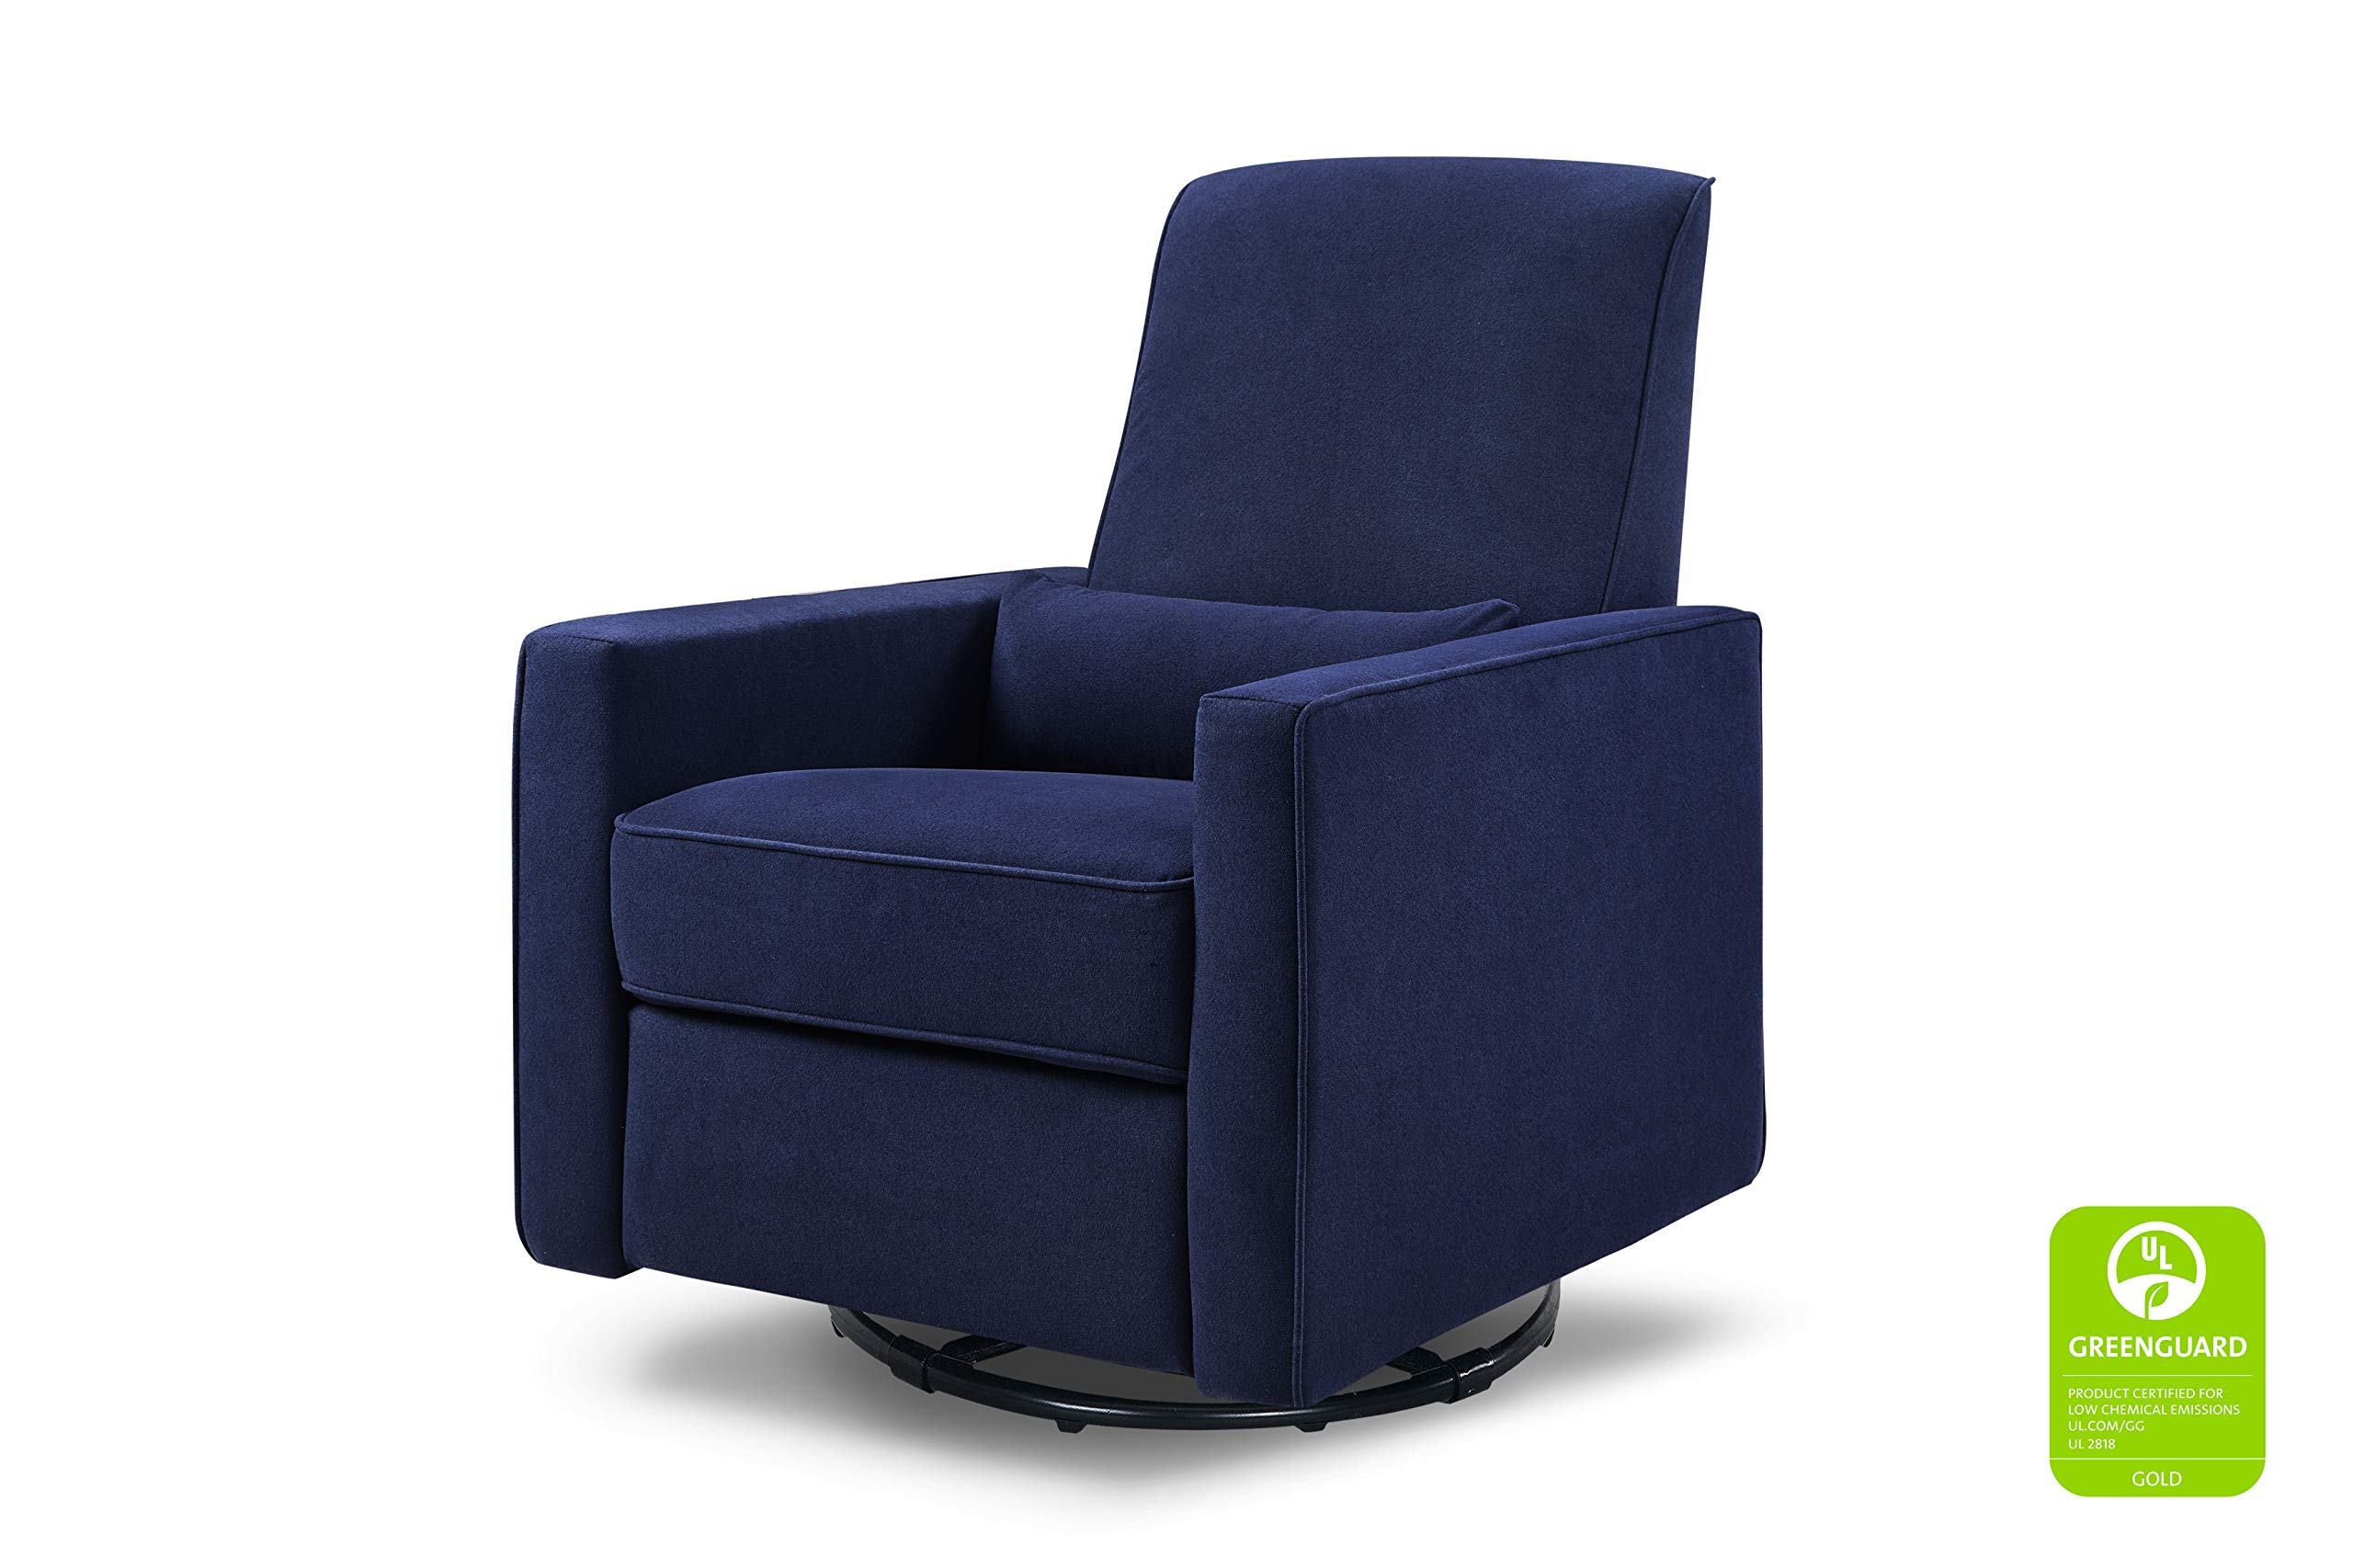 DaVinci Piper Upholstered Recliner and Swivel Glider, Navy by DaVinci